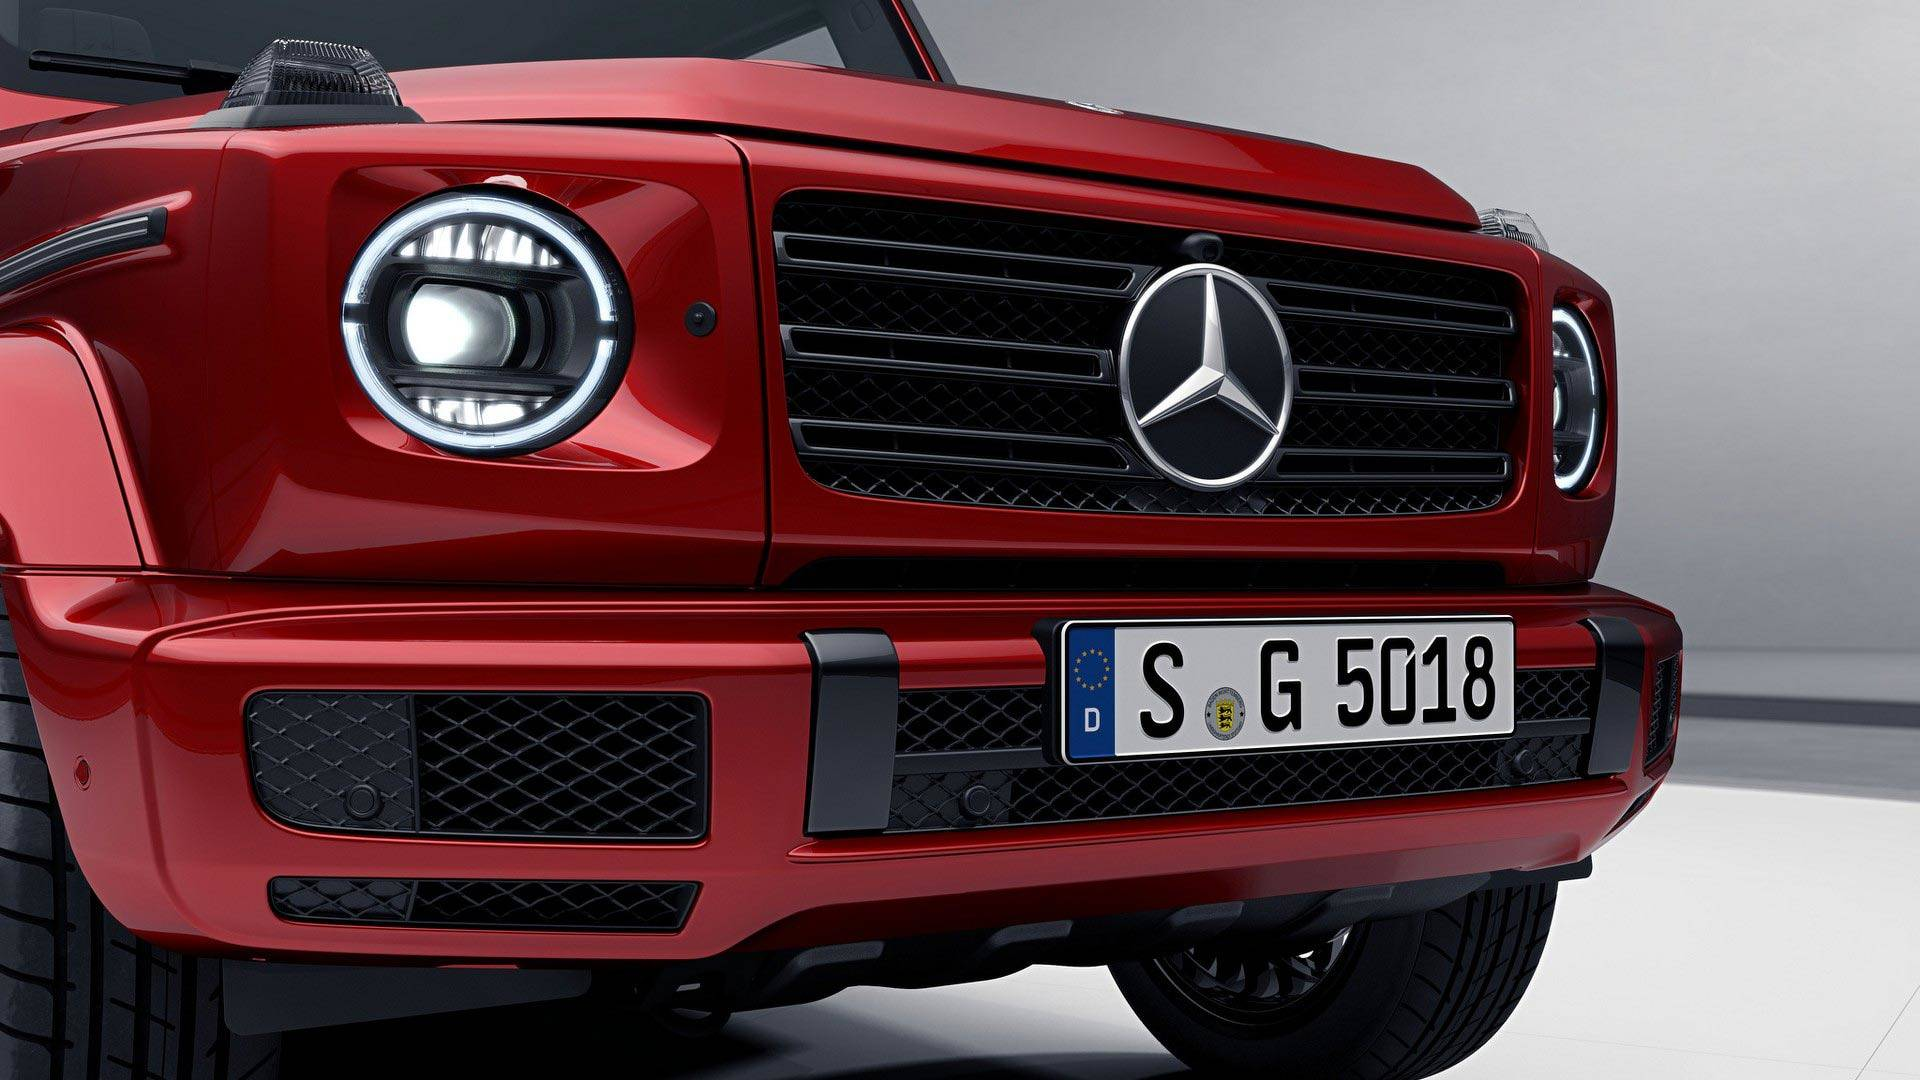 night package goes official for the 2019 mercedes-benz g-class